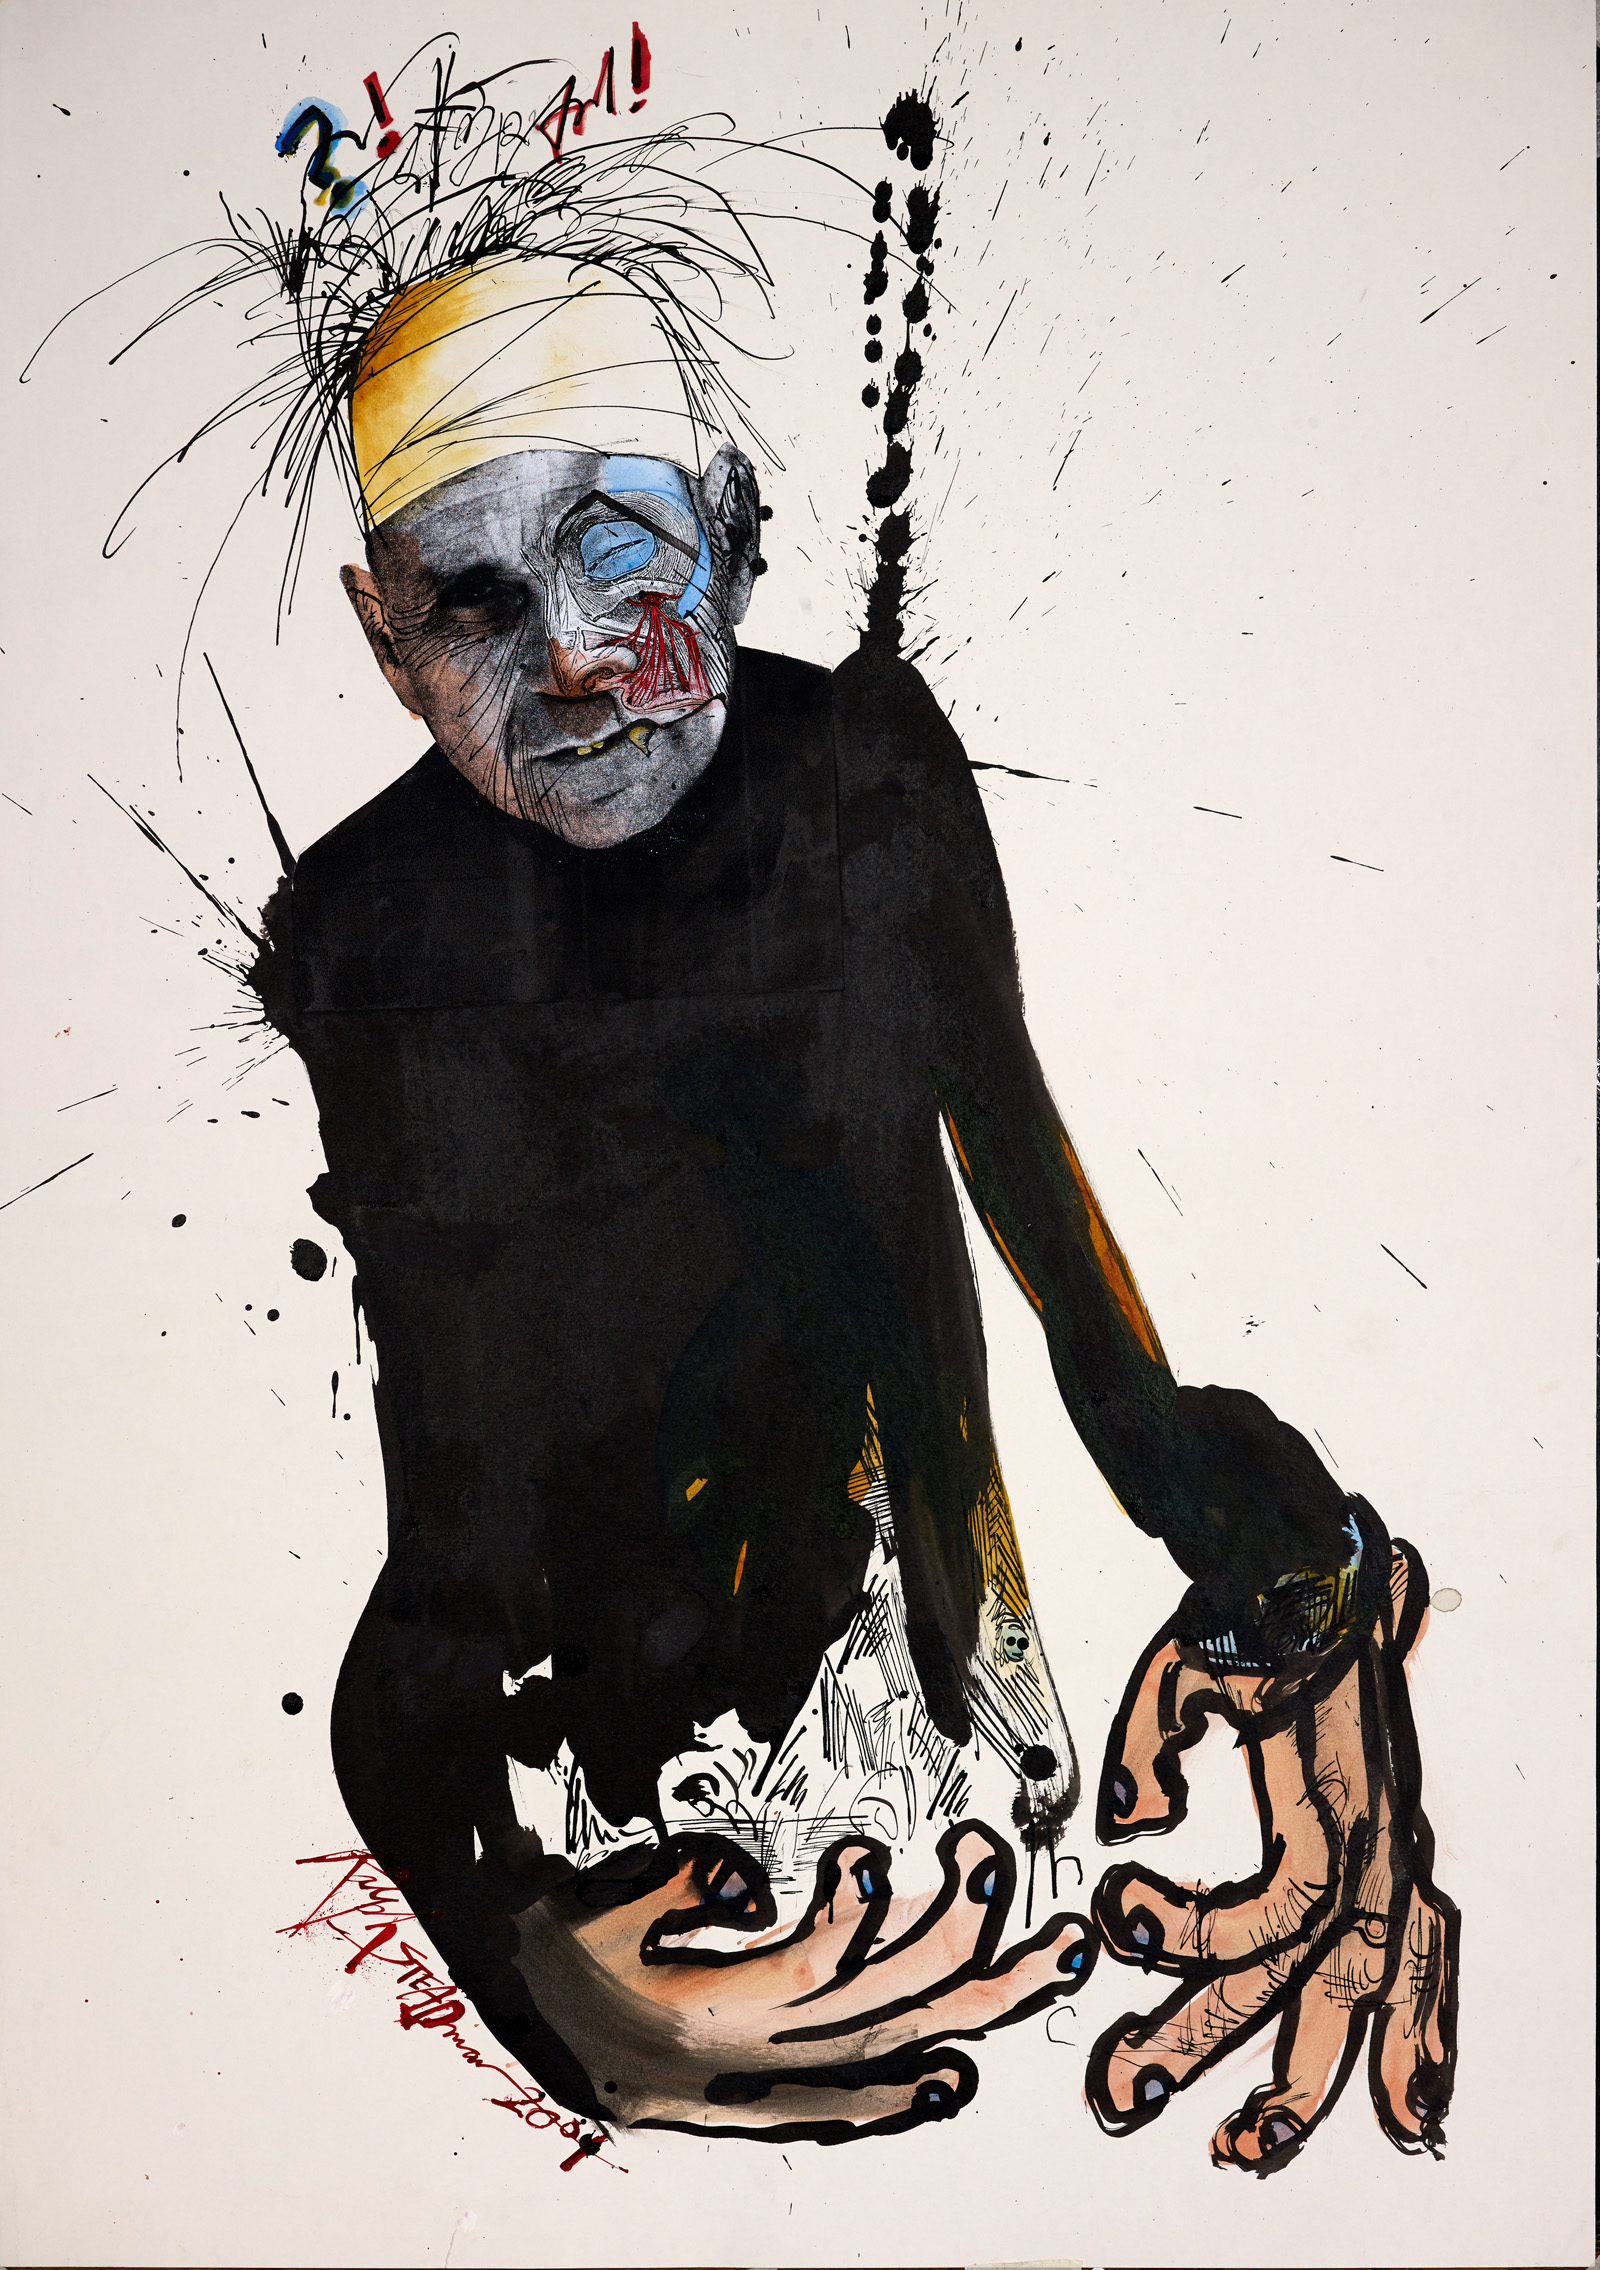 Ralph Steadmans's Social Commentary